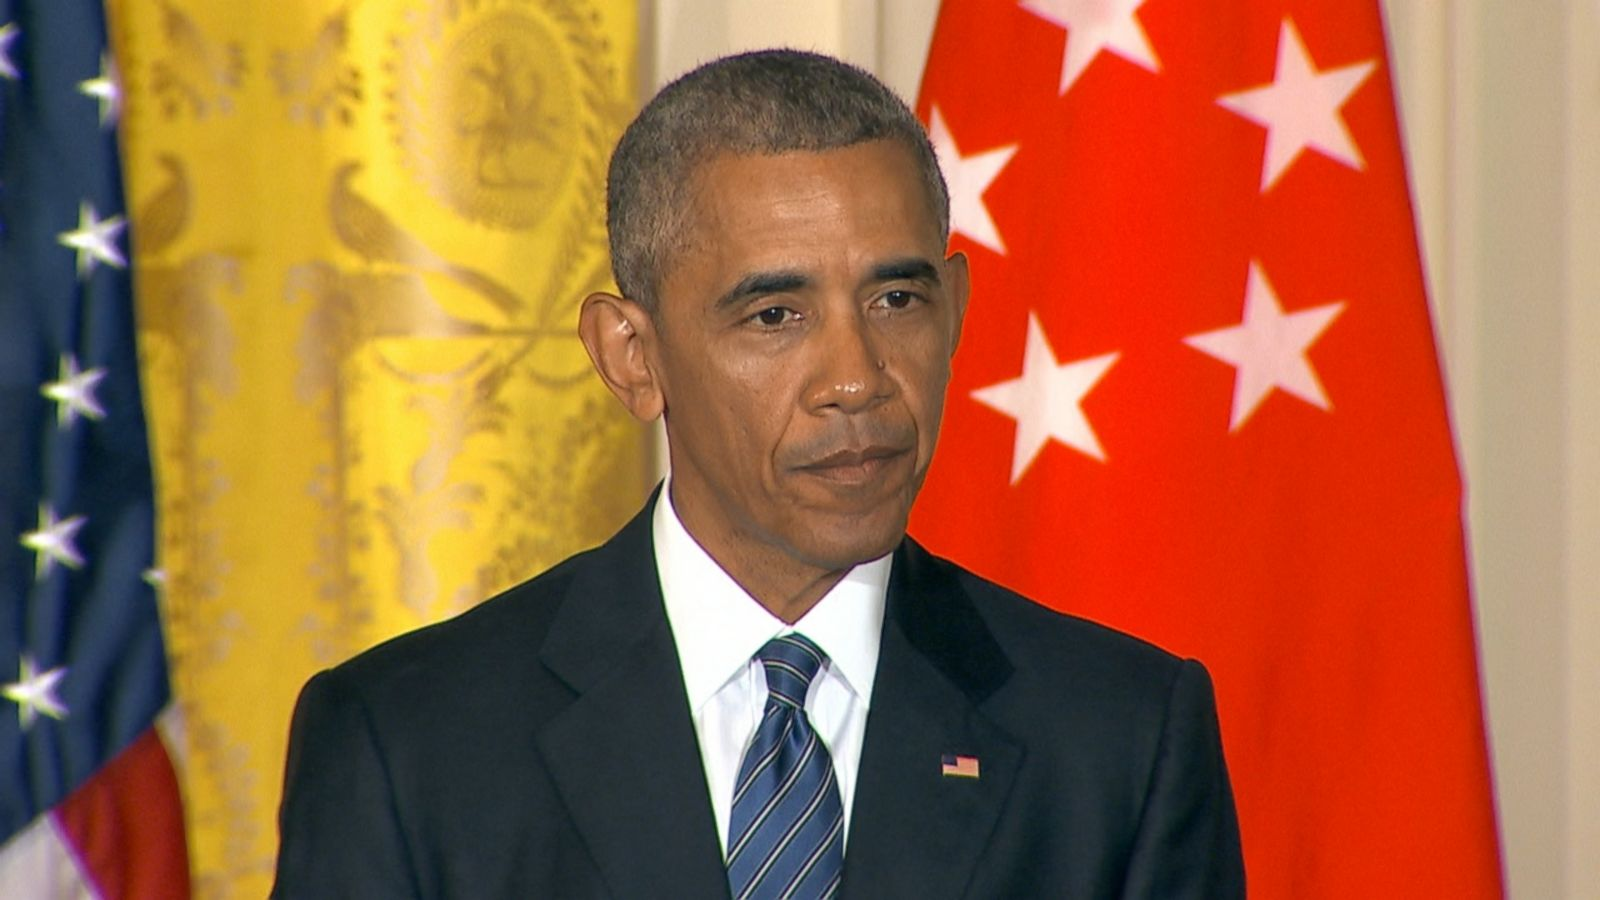 In Pushing Tpp President Obama Says He Has Better Argument Than